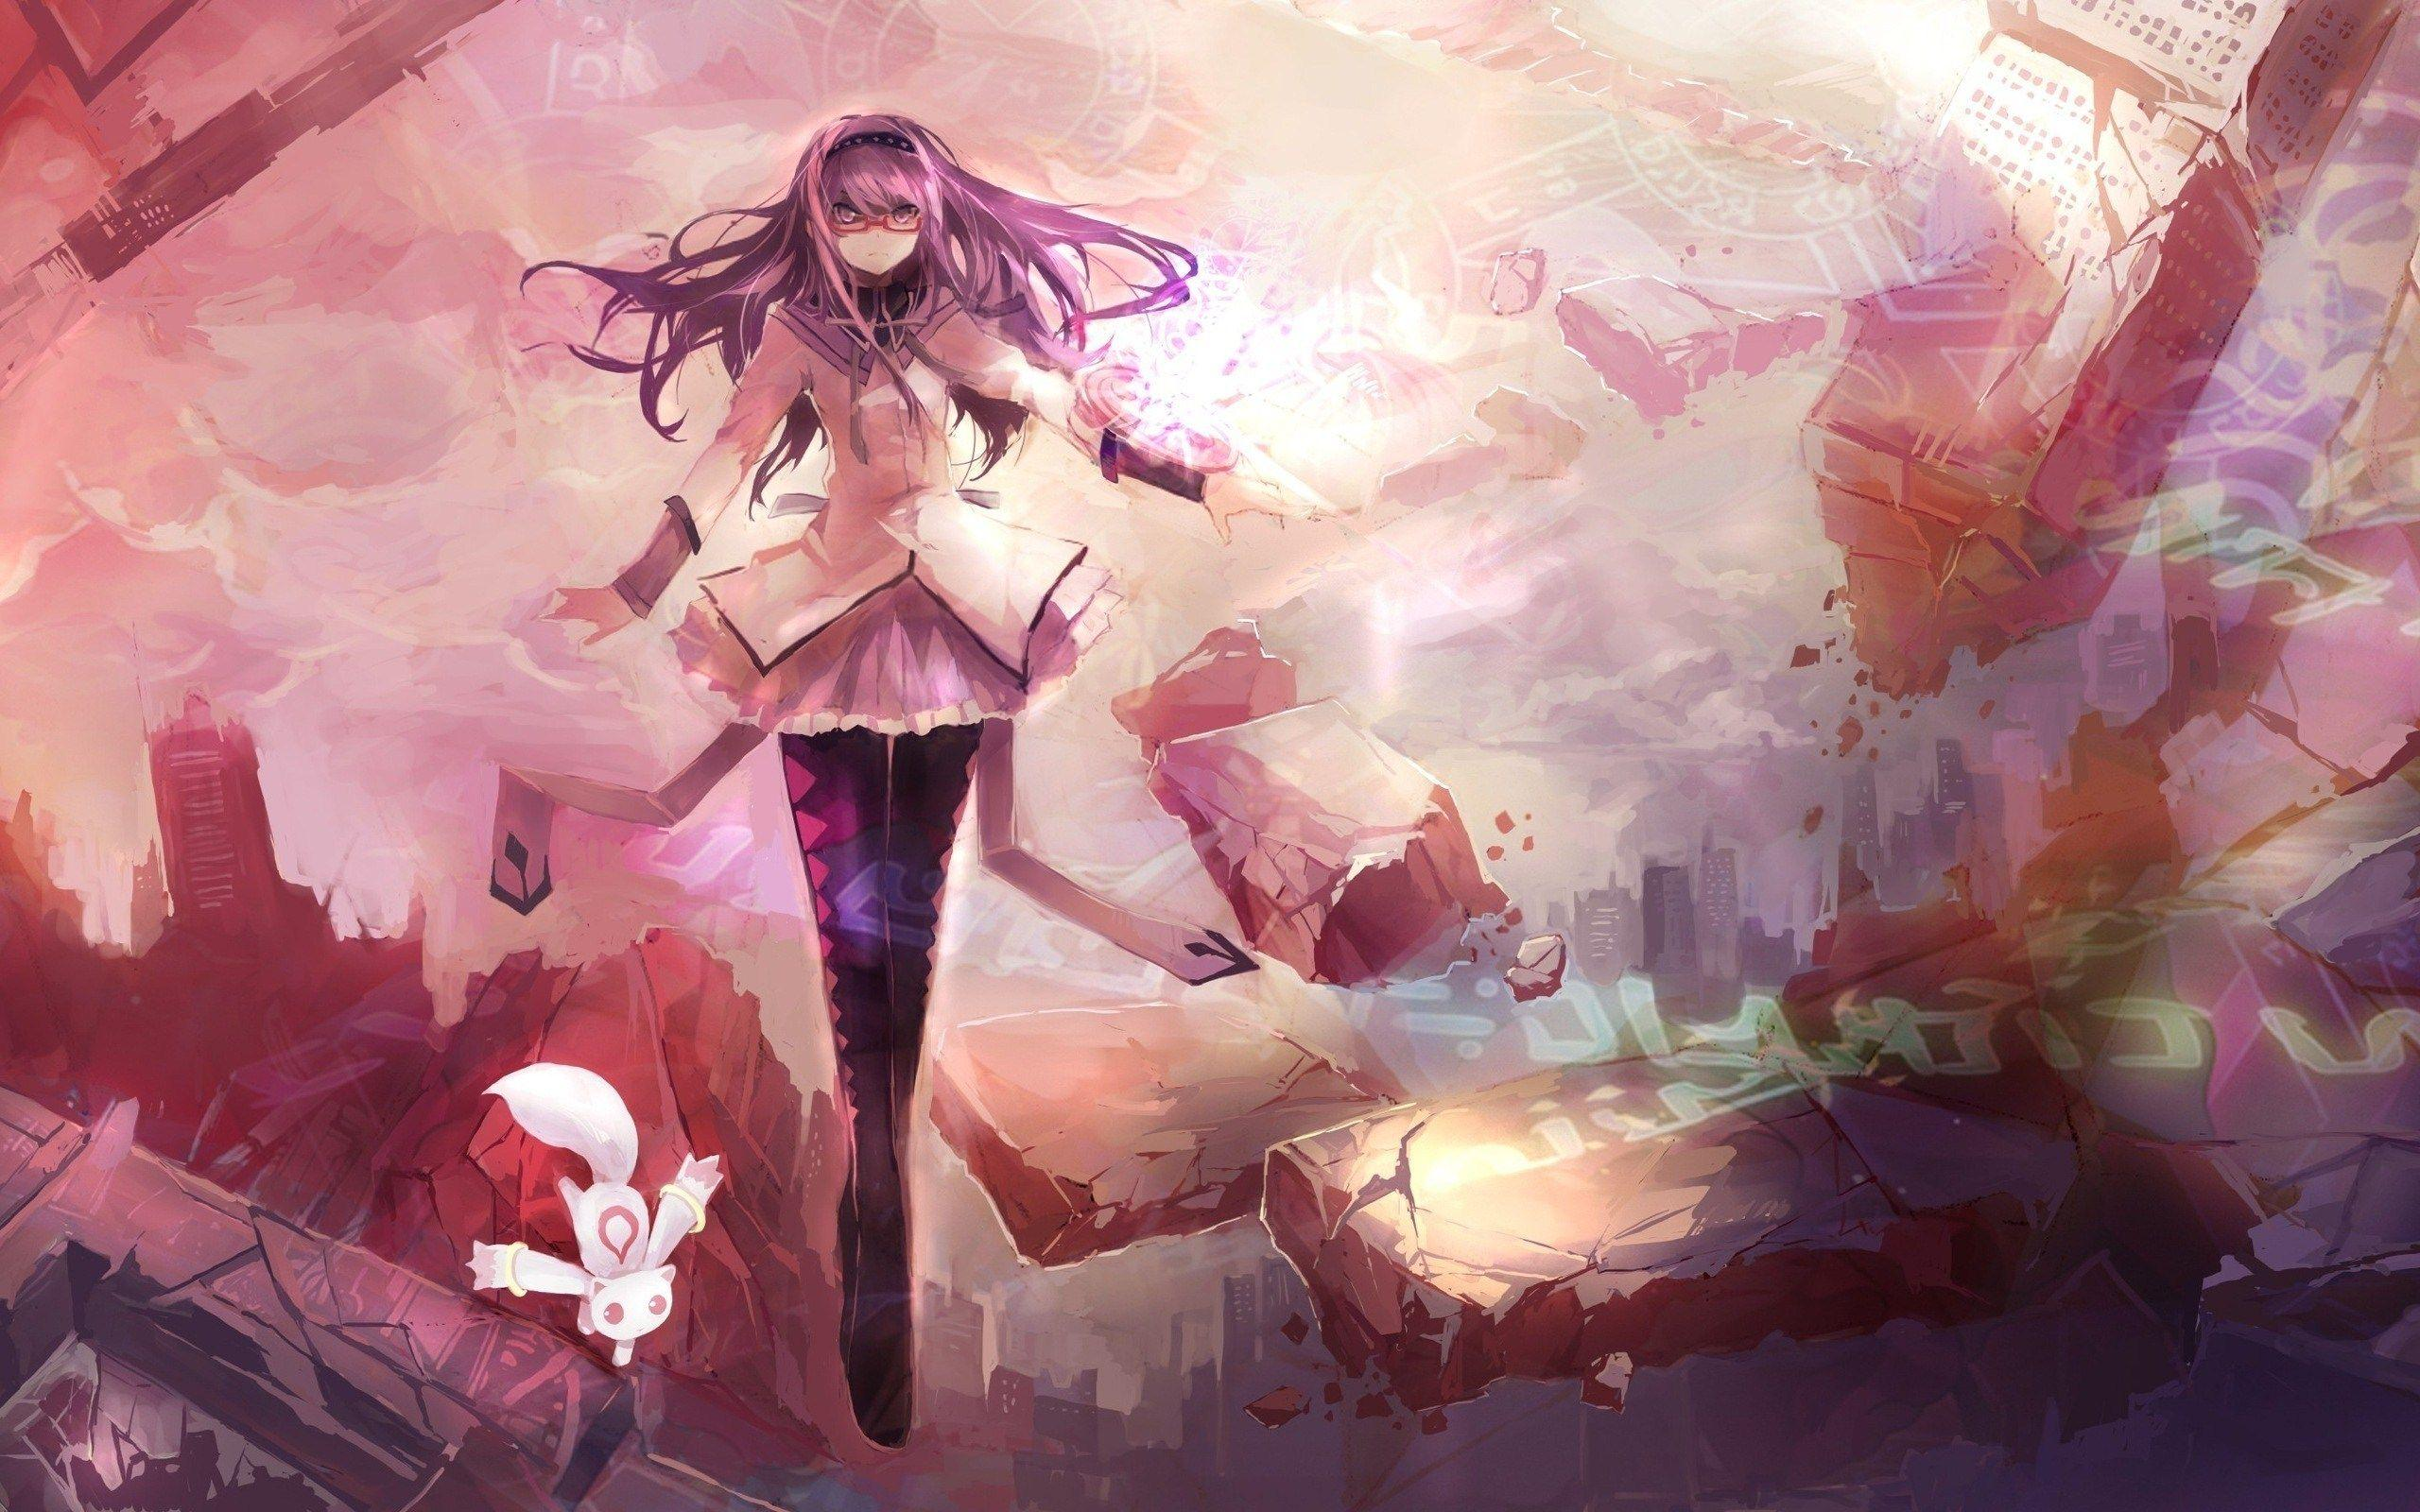 Anime Love Art Fight Picture Abstraction Beauty Girl Manga